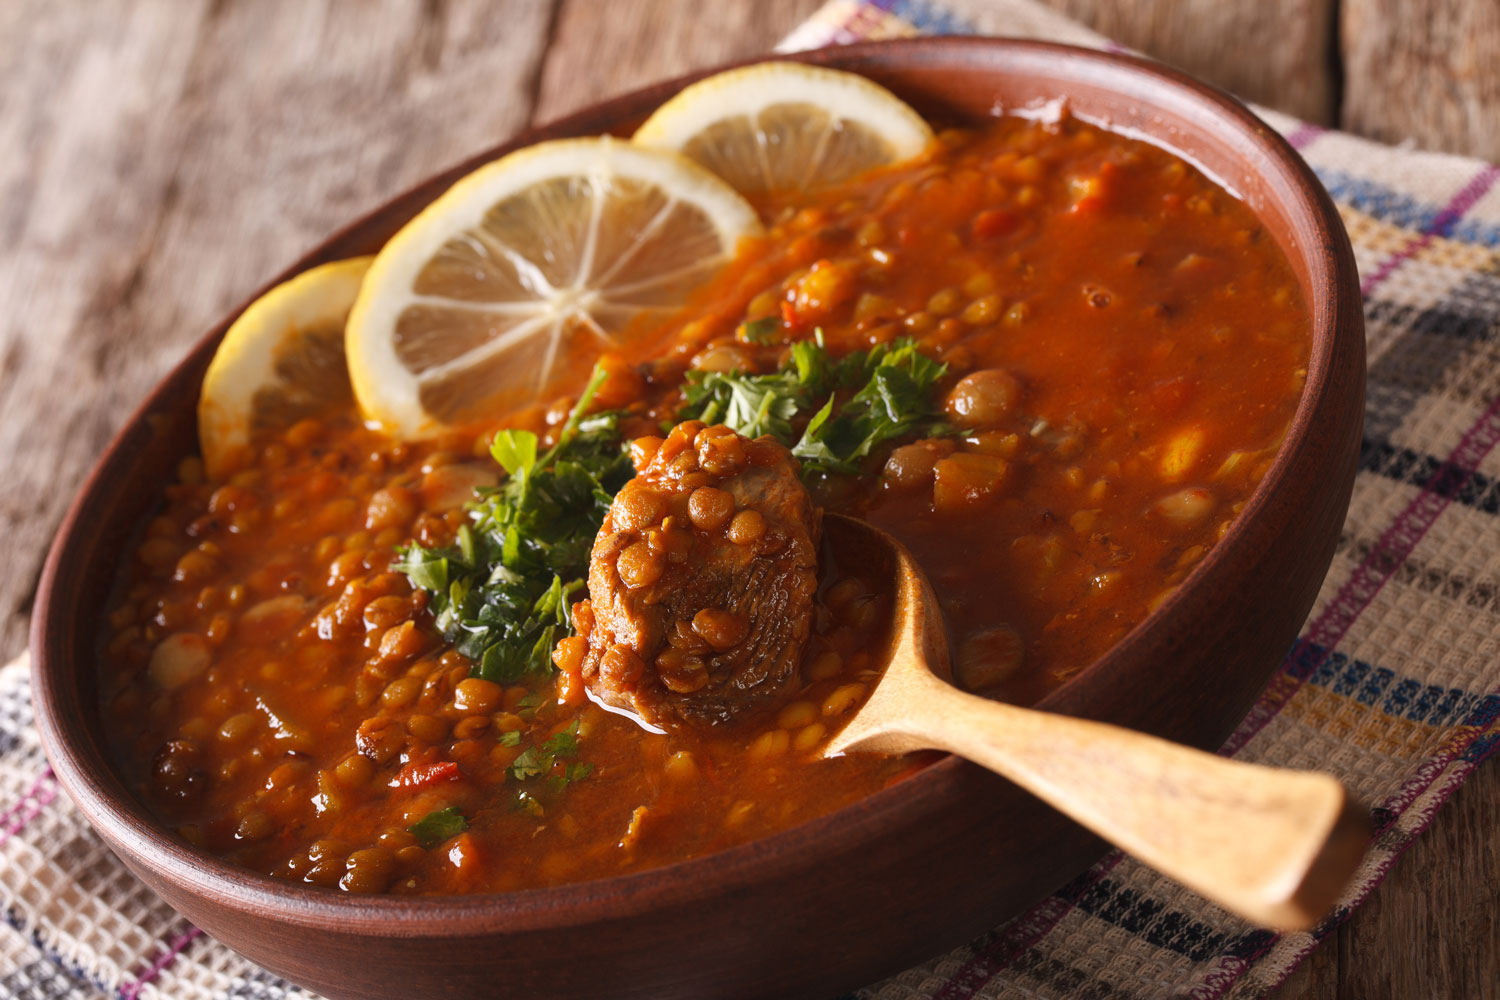 Arabic Cuisine: Harira Soup in a Bowl